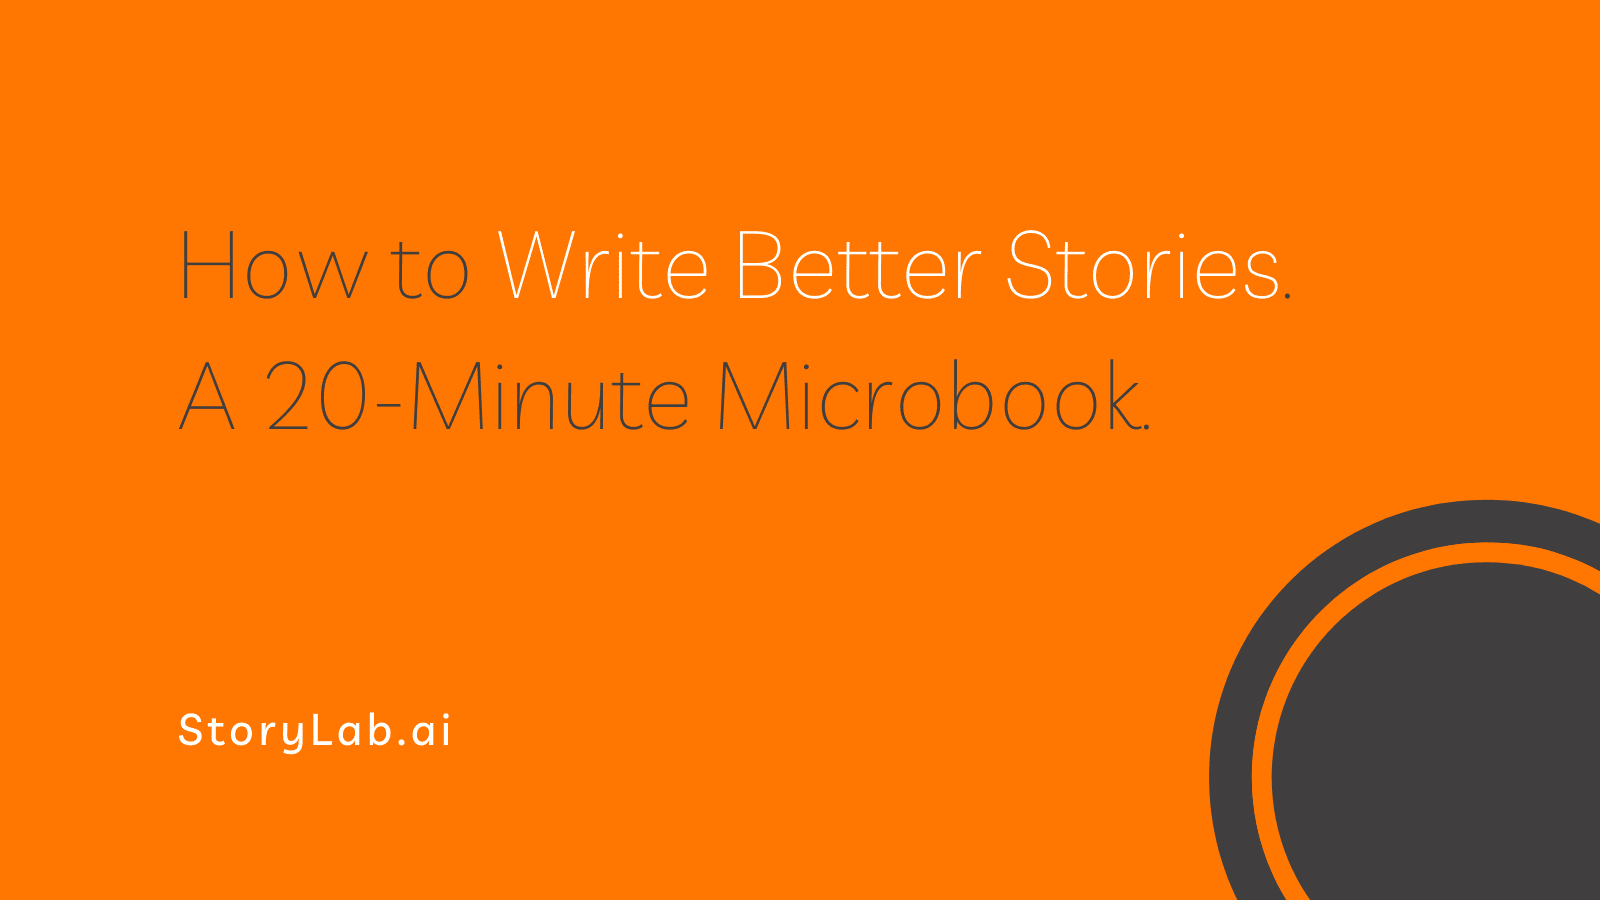 How to Write Better Stories. A 20-Minute Microbook